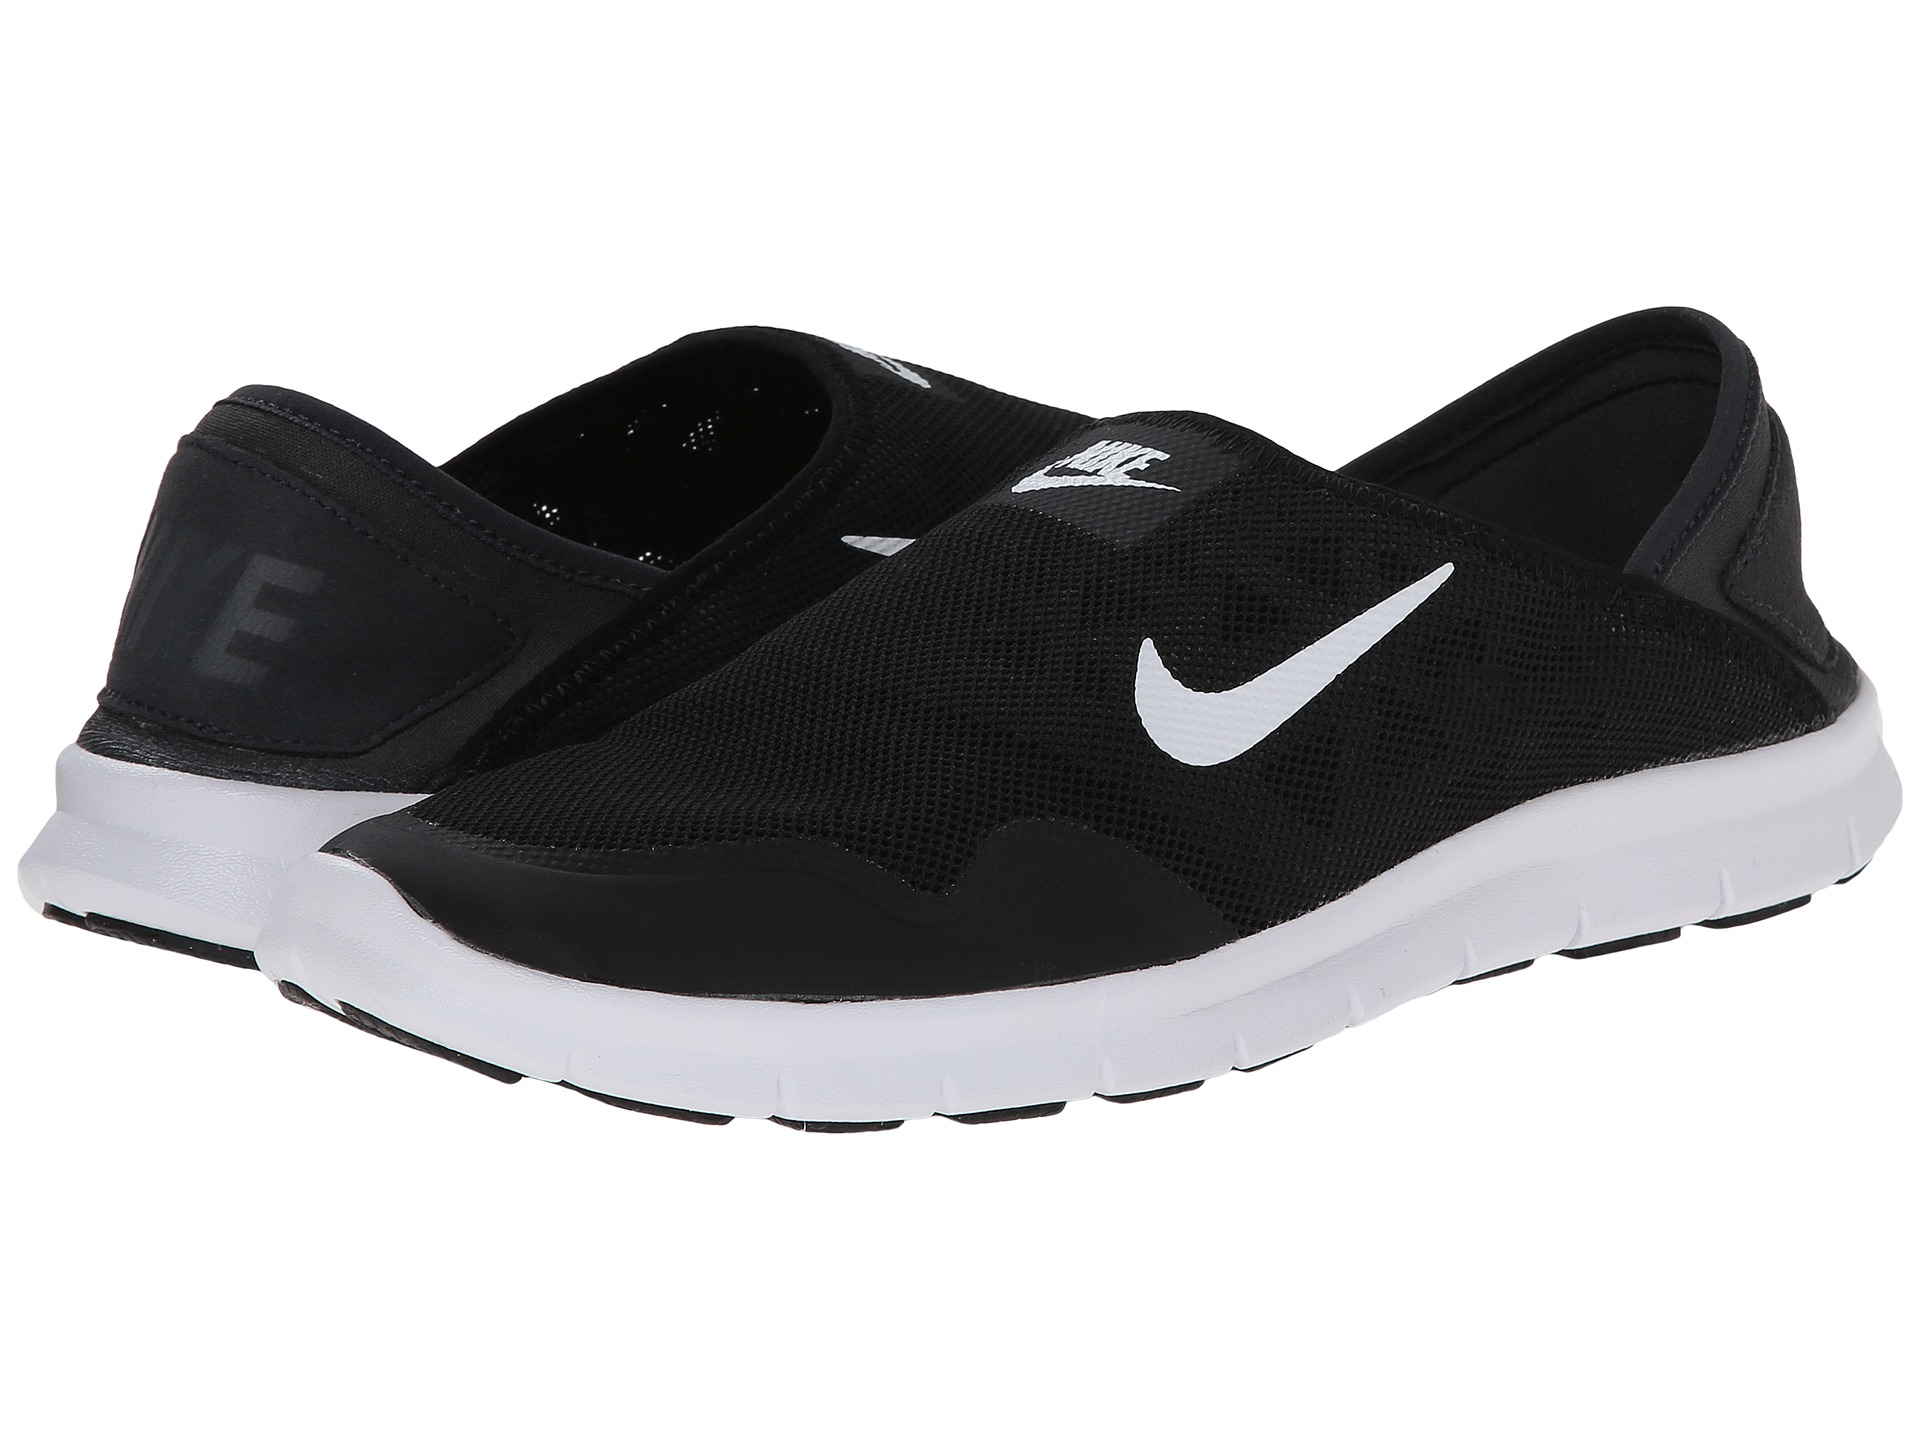 Nike Orive Lite Slip-On - Zappos.com Free Shipping BOTH Ways